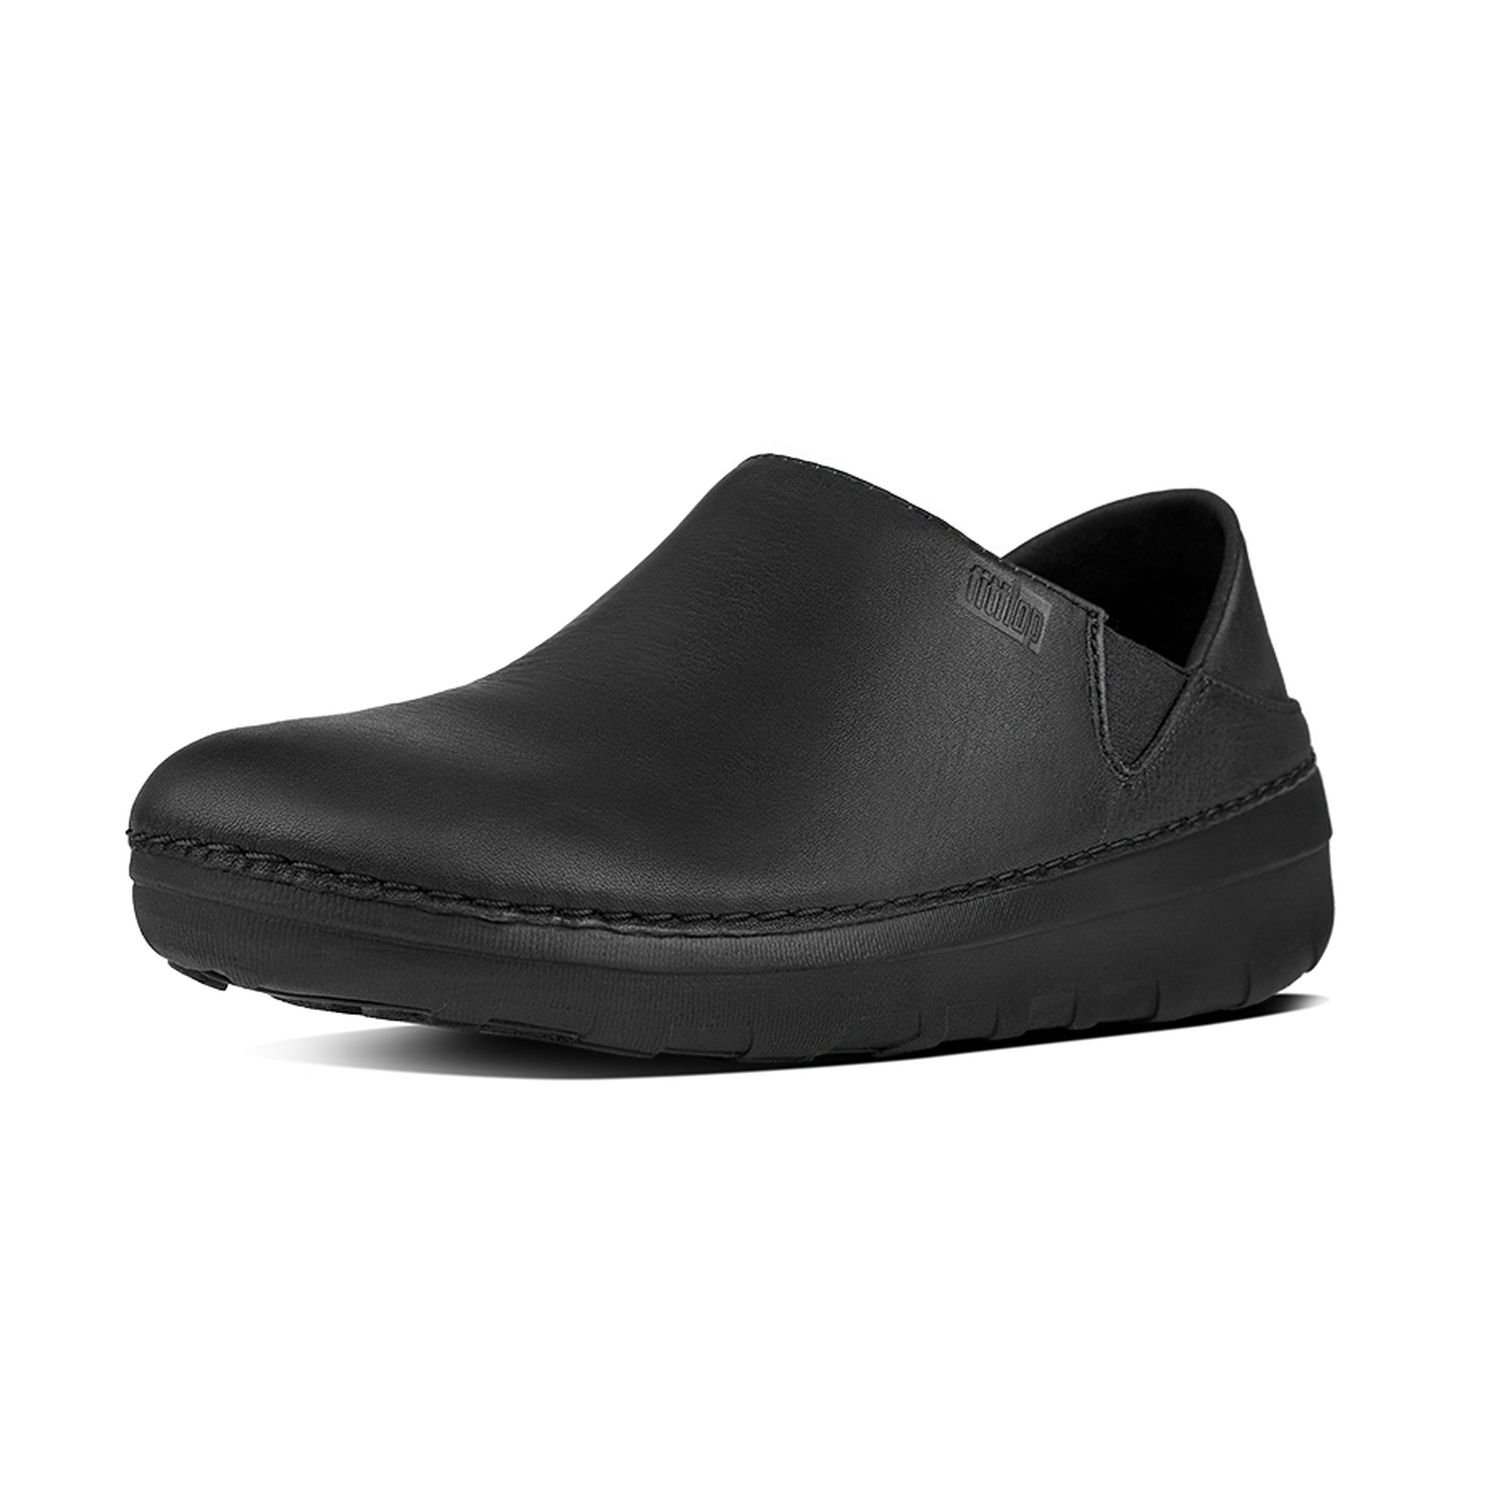 FitFlop Women's Superloafer Leather Loafers All Black 08 & Sunscreen